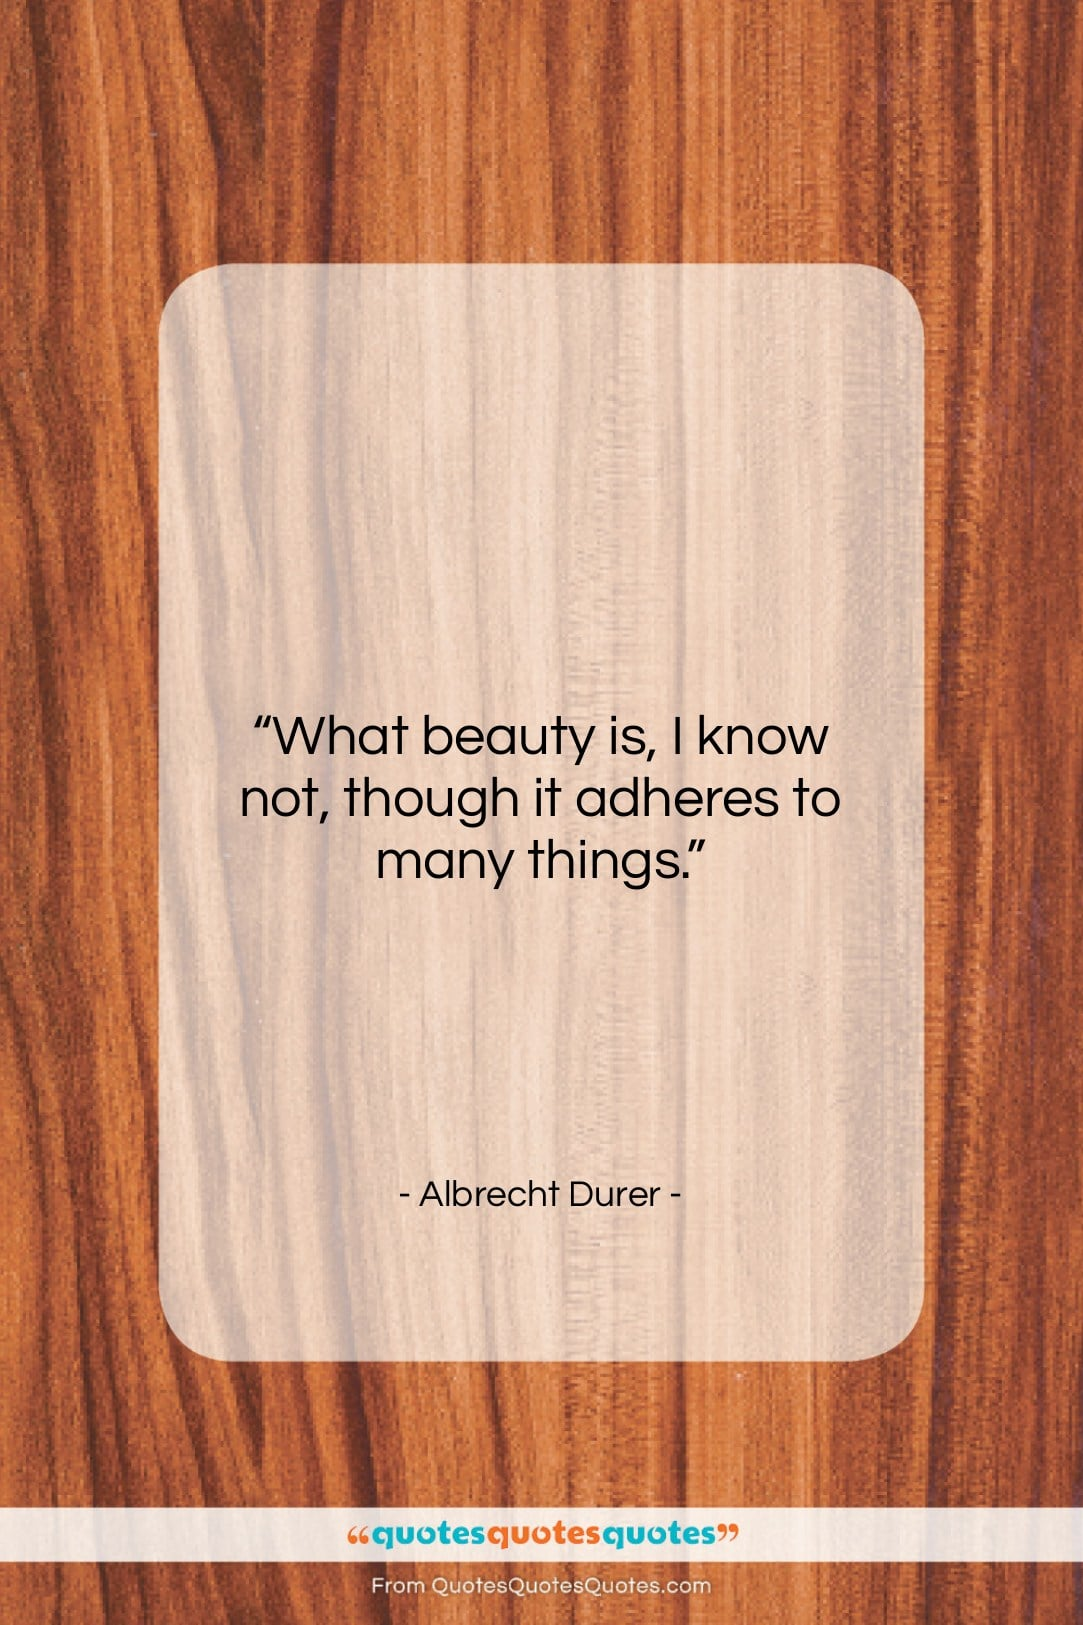 """Albrecht Durer quote: """"What beauty is, I know not, though…""""- at QuotesQuotesQuotes.com"""